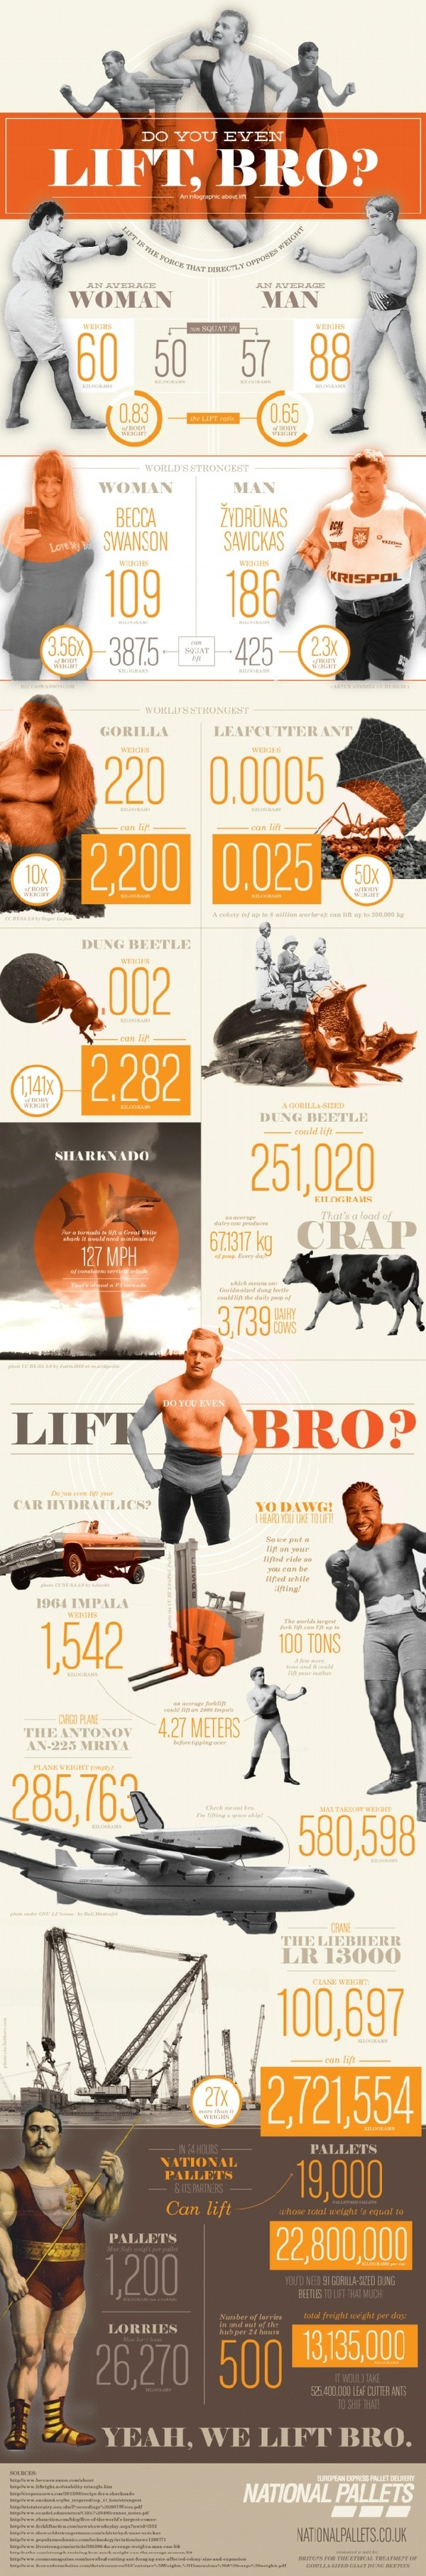 Do You Even Lift, Bro? [infographic] #ant #man #woman #gorilla #pallets #inforgraphics #hydraulics #force #lift #weight #strongest #dung bet